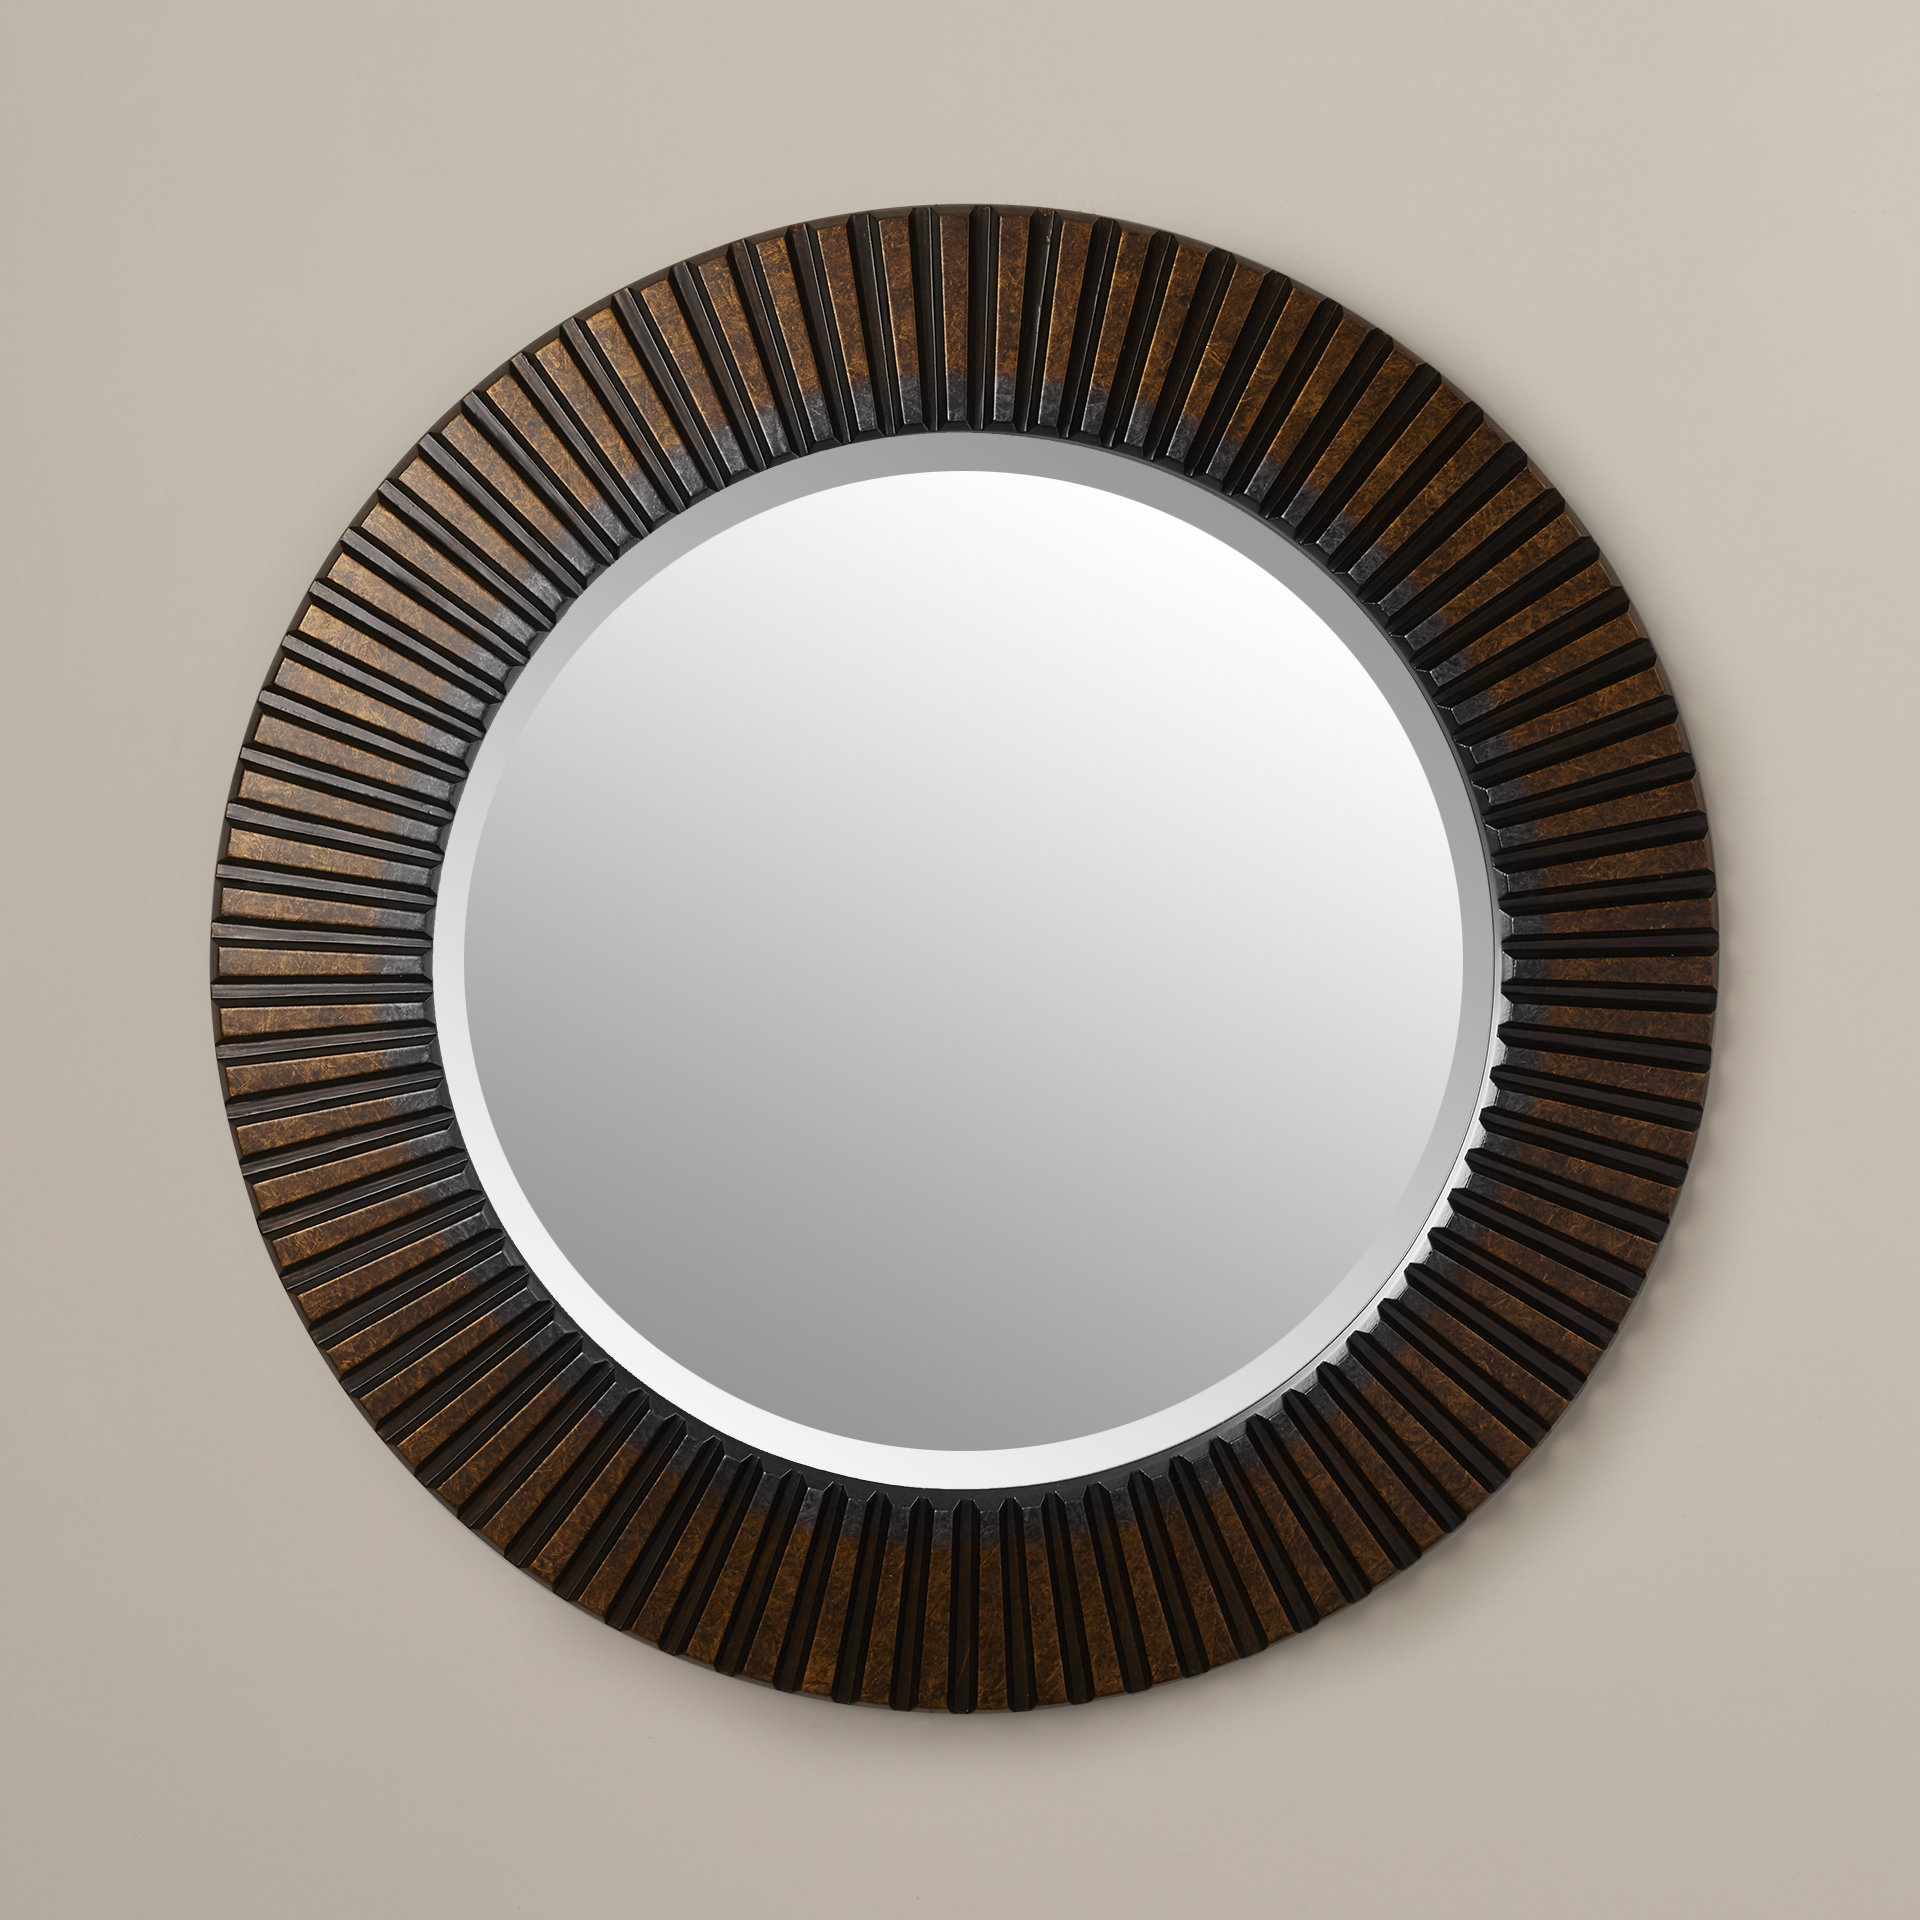 World Menagerie Round Eclectic Accent Mirror Intended For Round Eclectic Accent Mirrors (Image 20 of 20)